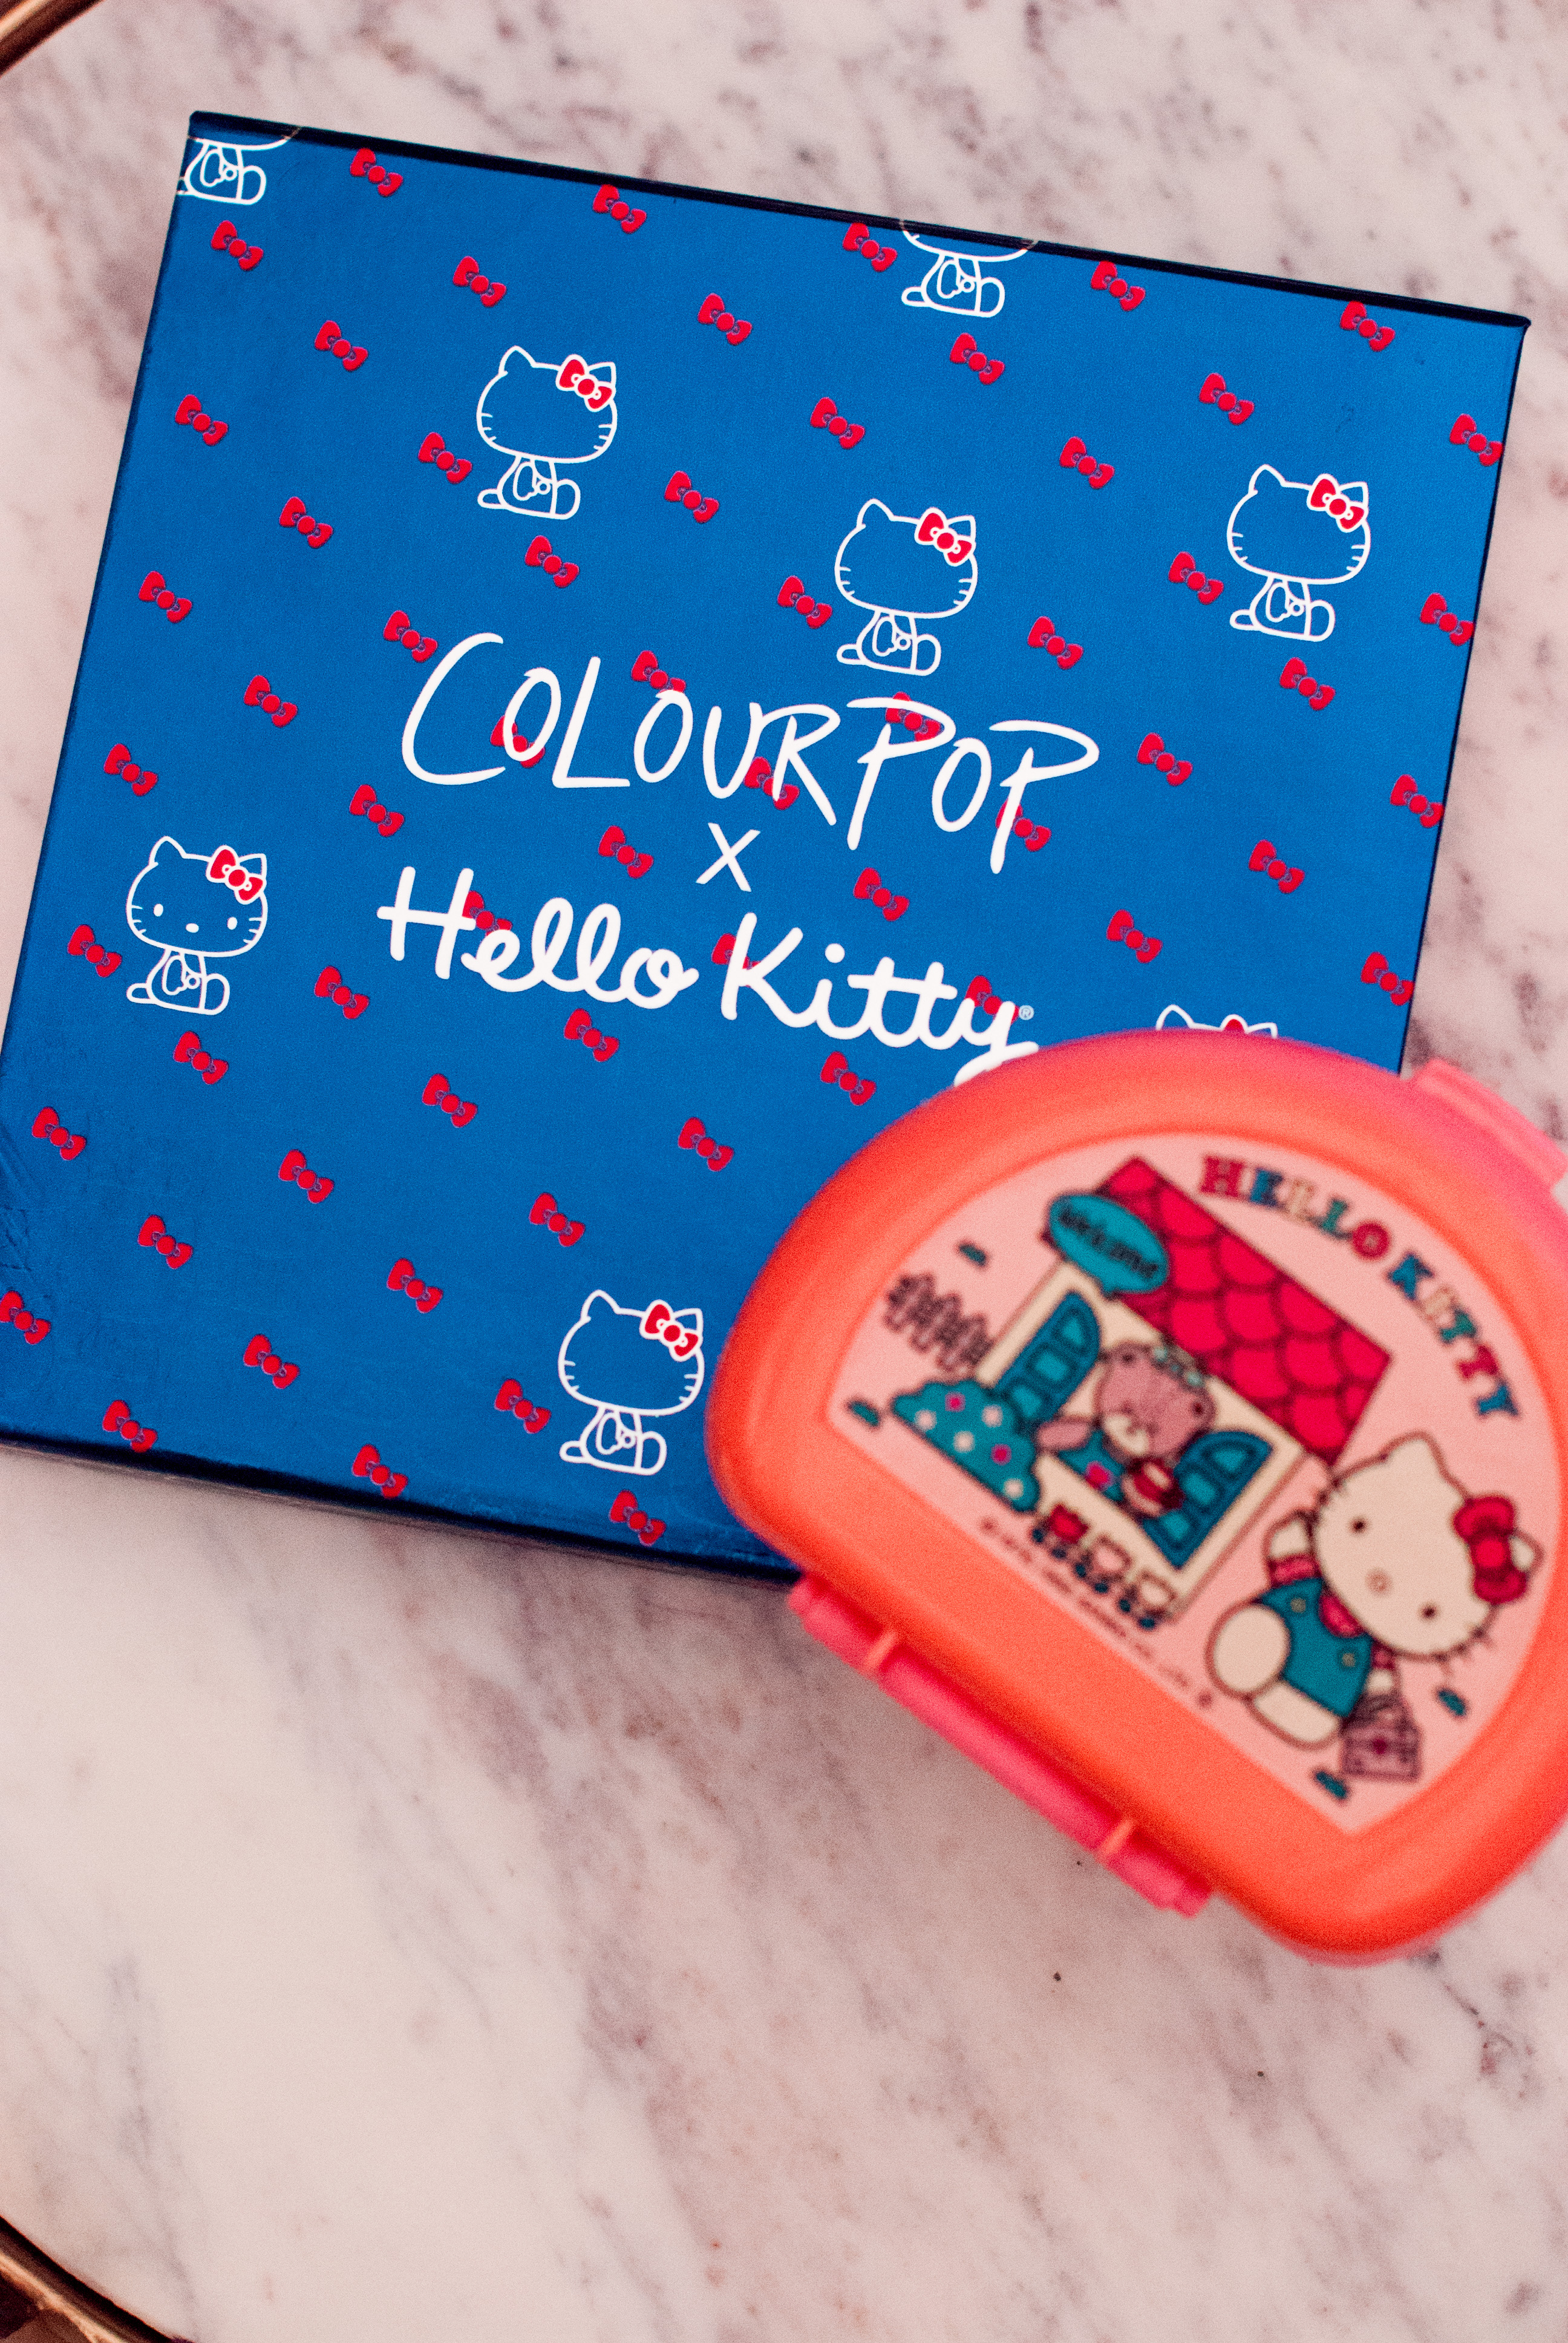 CoulorPop X Hello Kitty